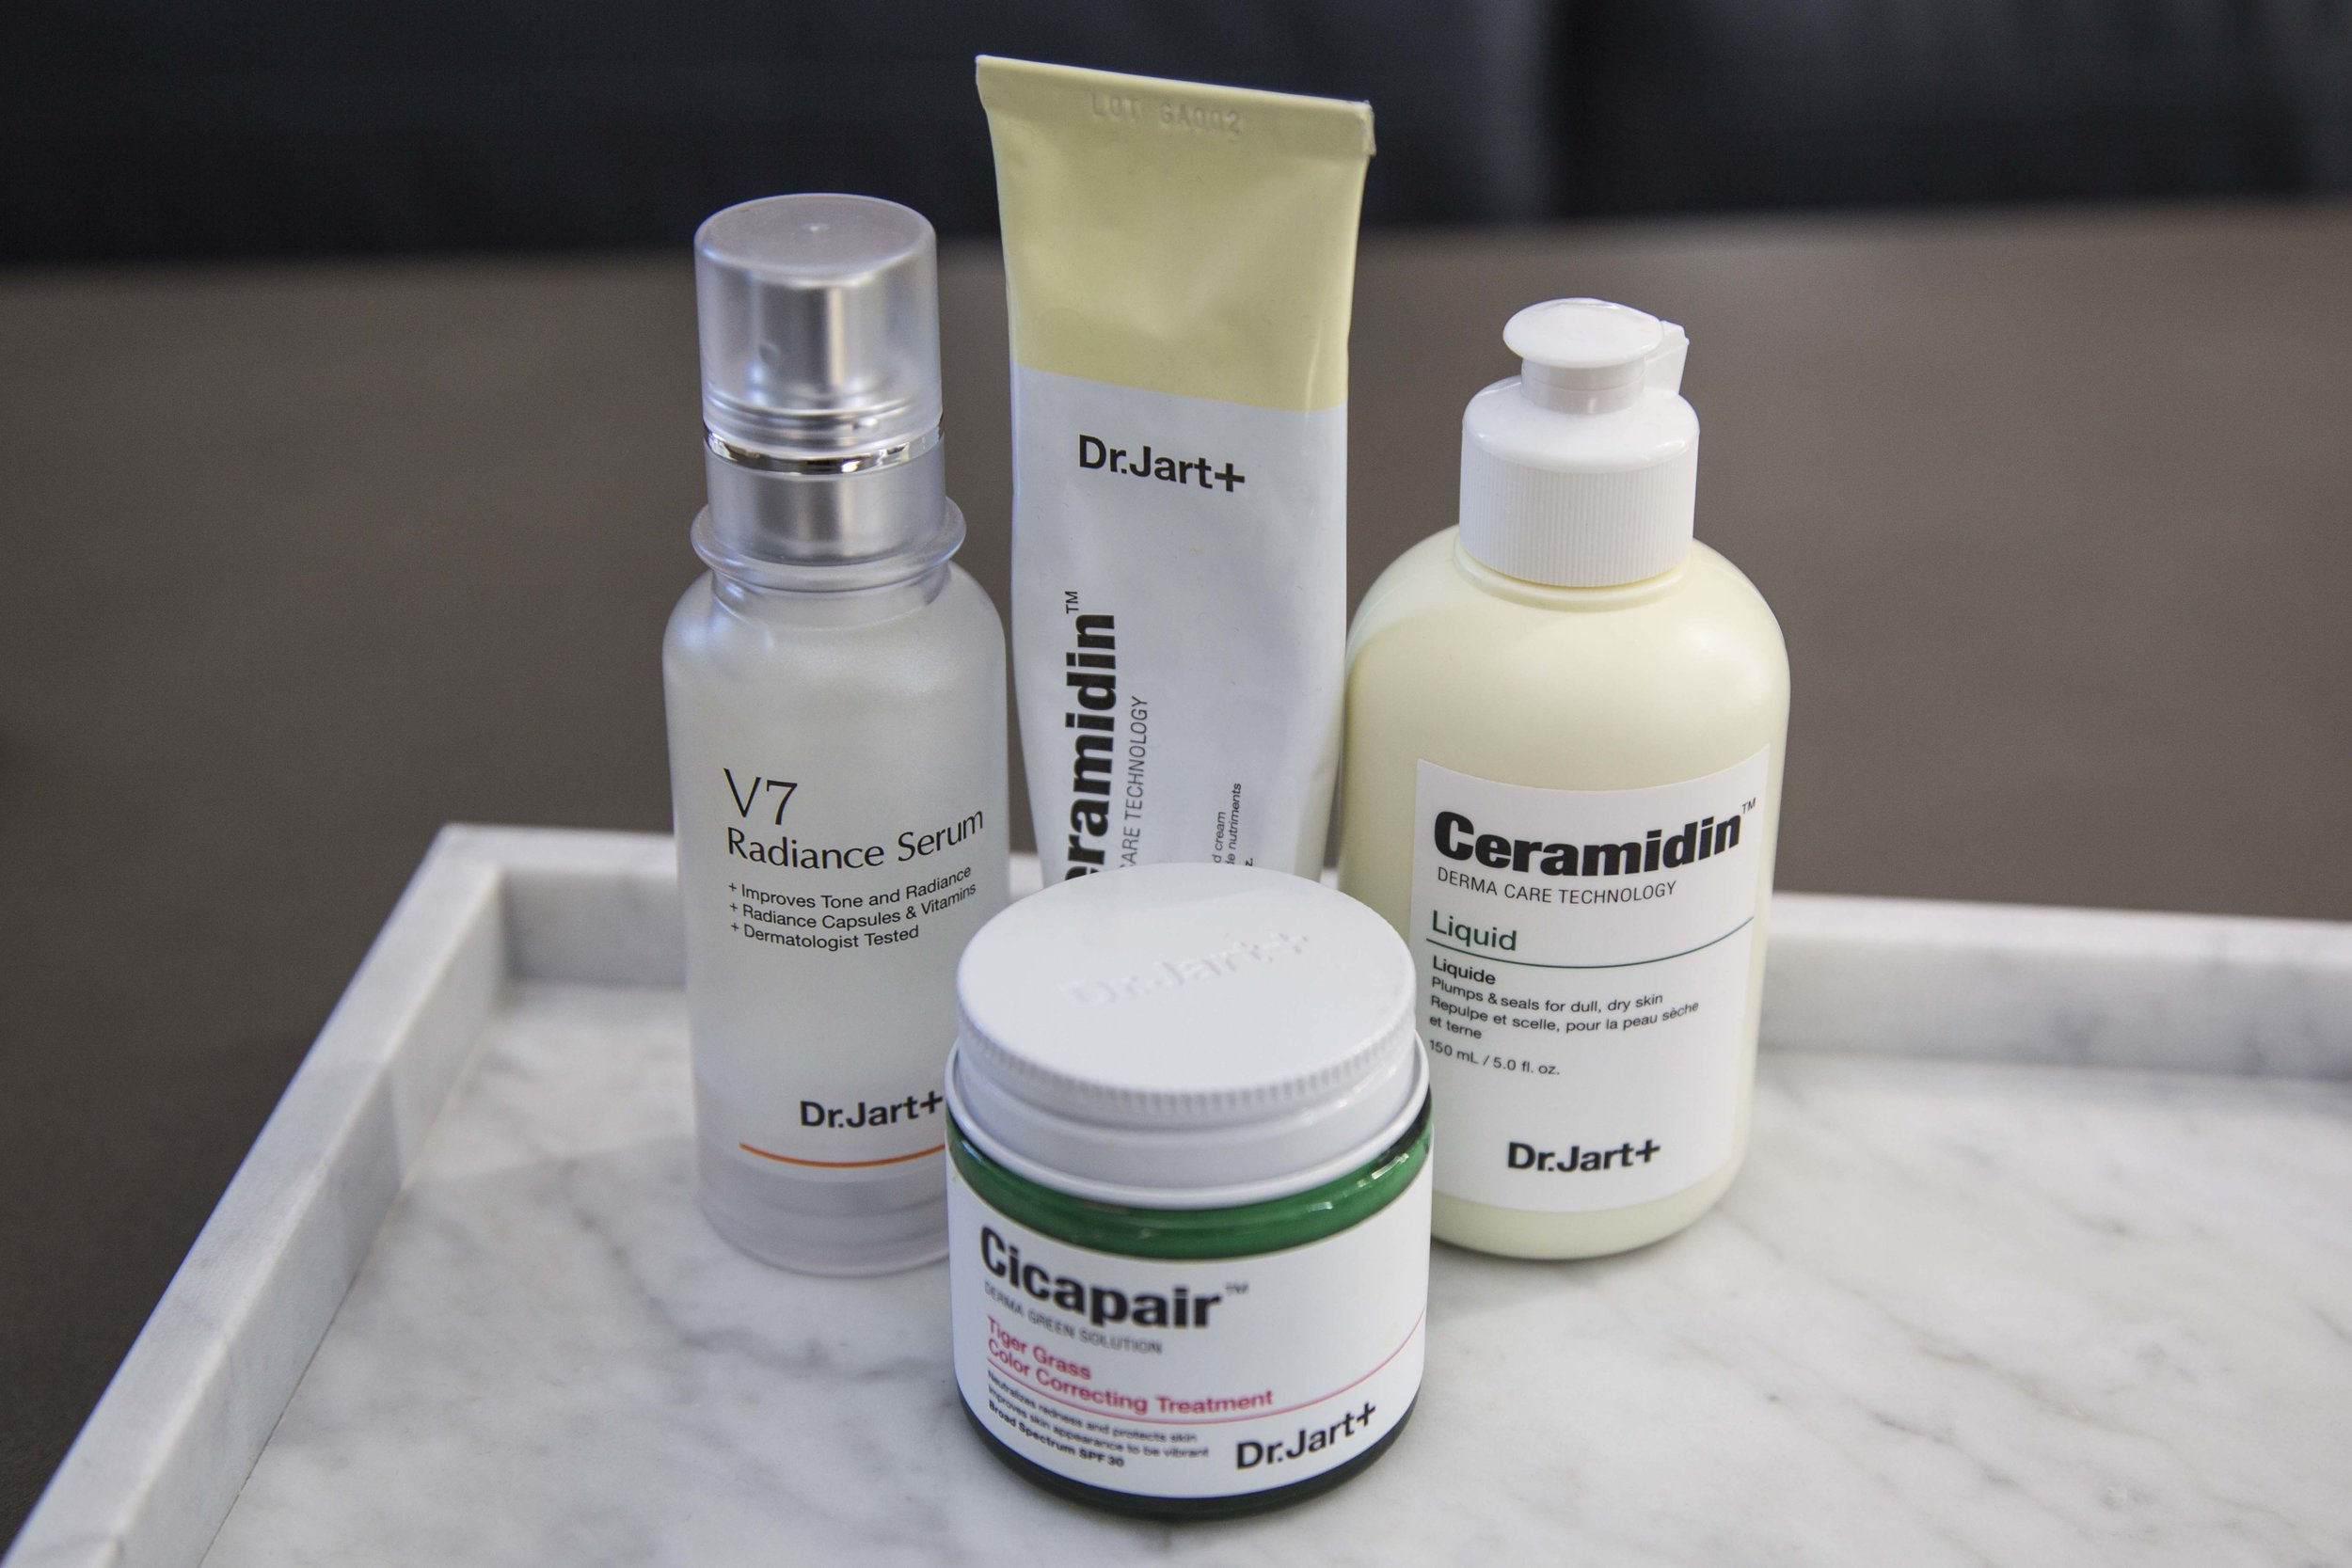 Dr Jart+ and Korean Skincare; Dr Jart+ V7 Radiance Serum, Dr Jart+ Ceramidin™ Cream, Dr Jart+ Ceramidin™ Liquid, Dr Jart+ Cicapair™ Tiger Grass Cream